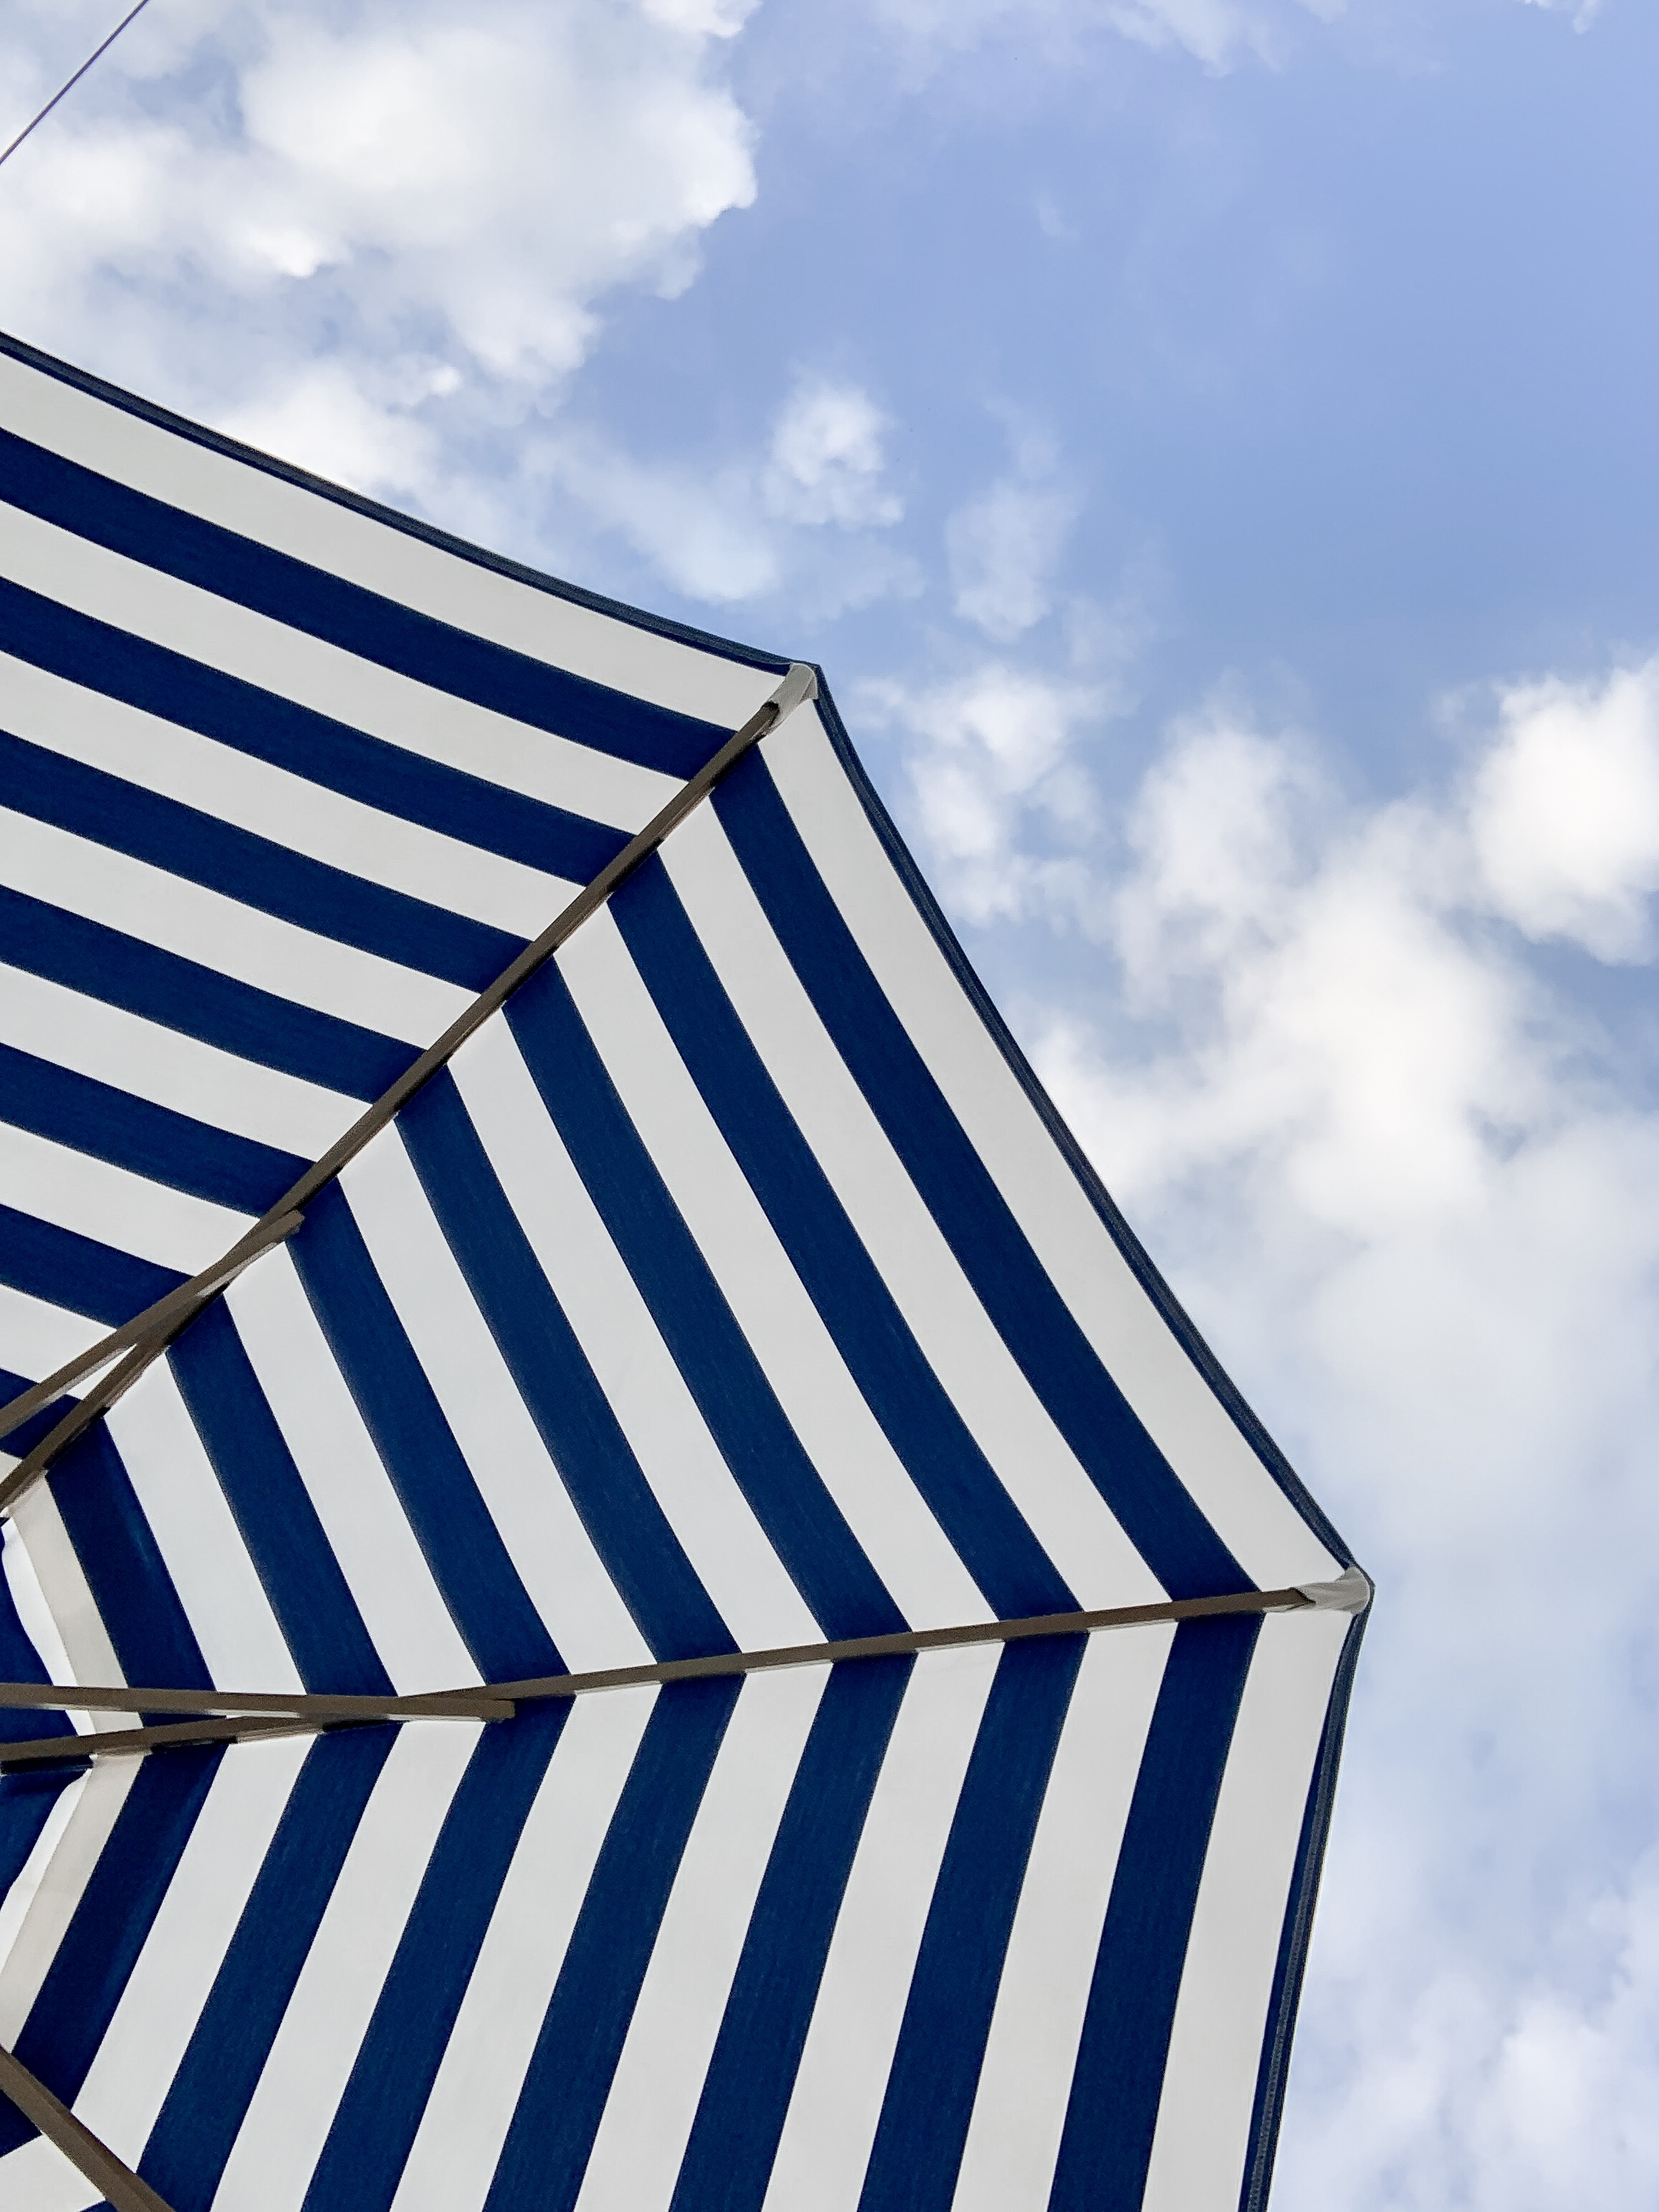 striped blue and white sun umbrella